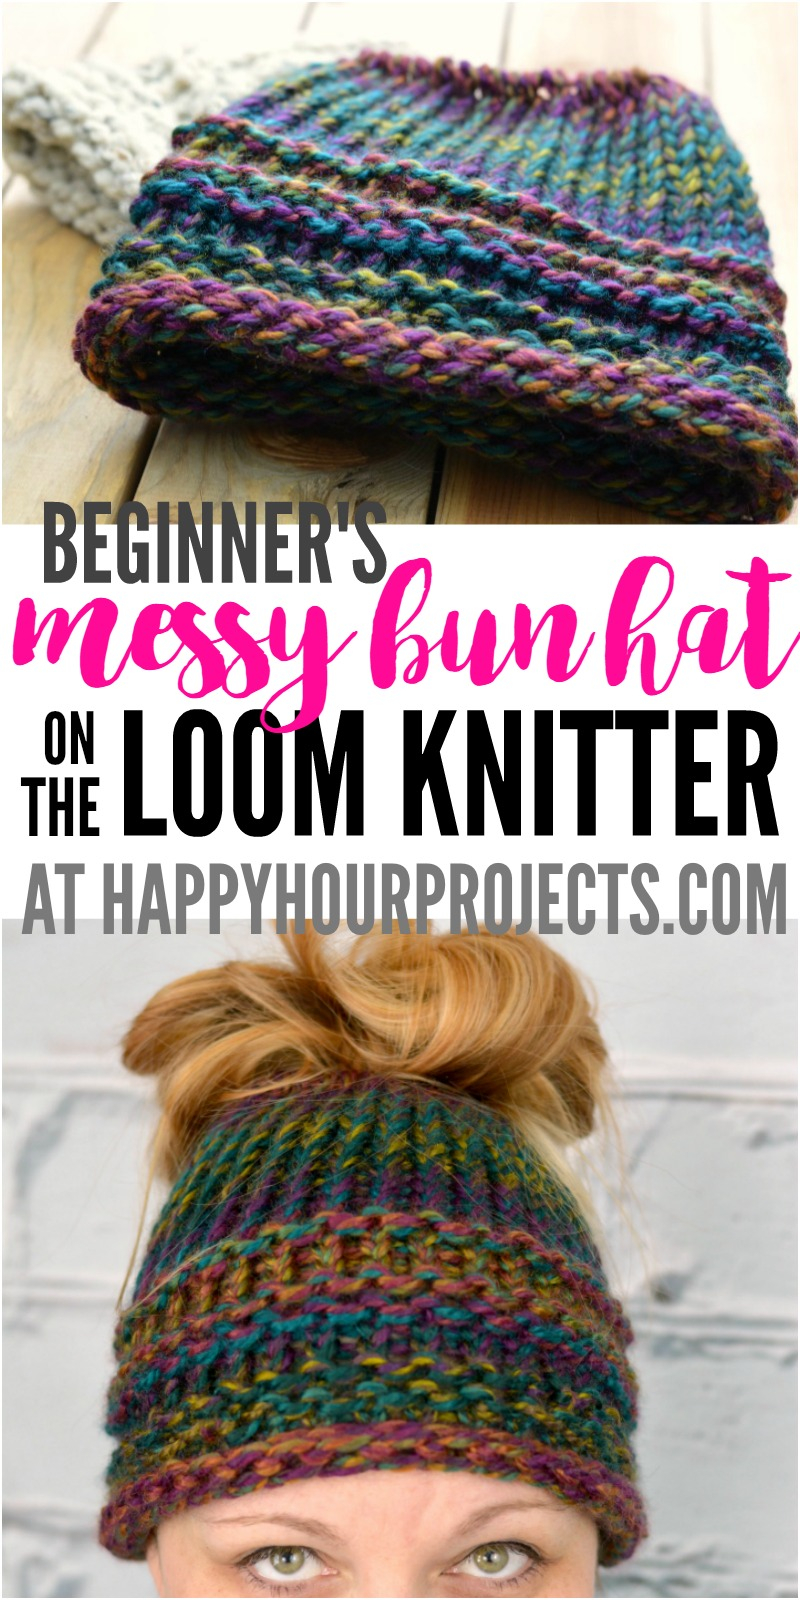 Loom Knit Patterns Round Looms Diy Messy Bun Hat Loom Knitter Pattern For Beginners Happy Hour